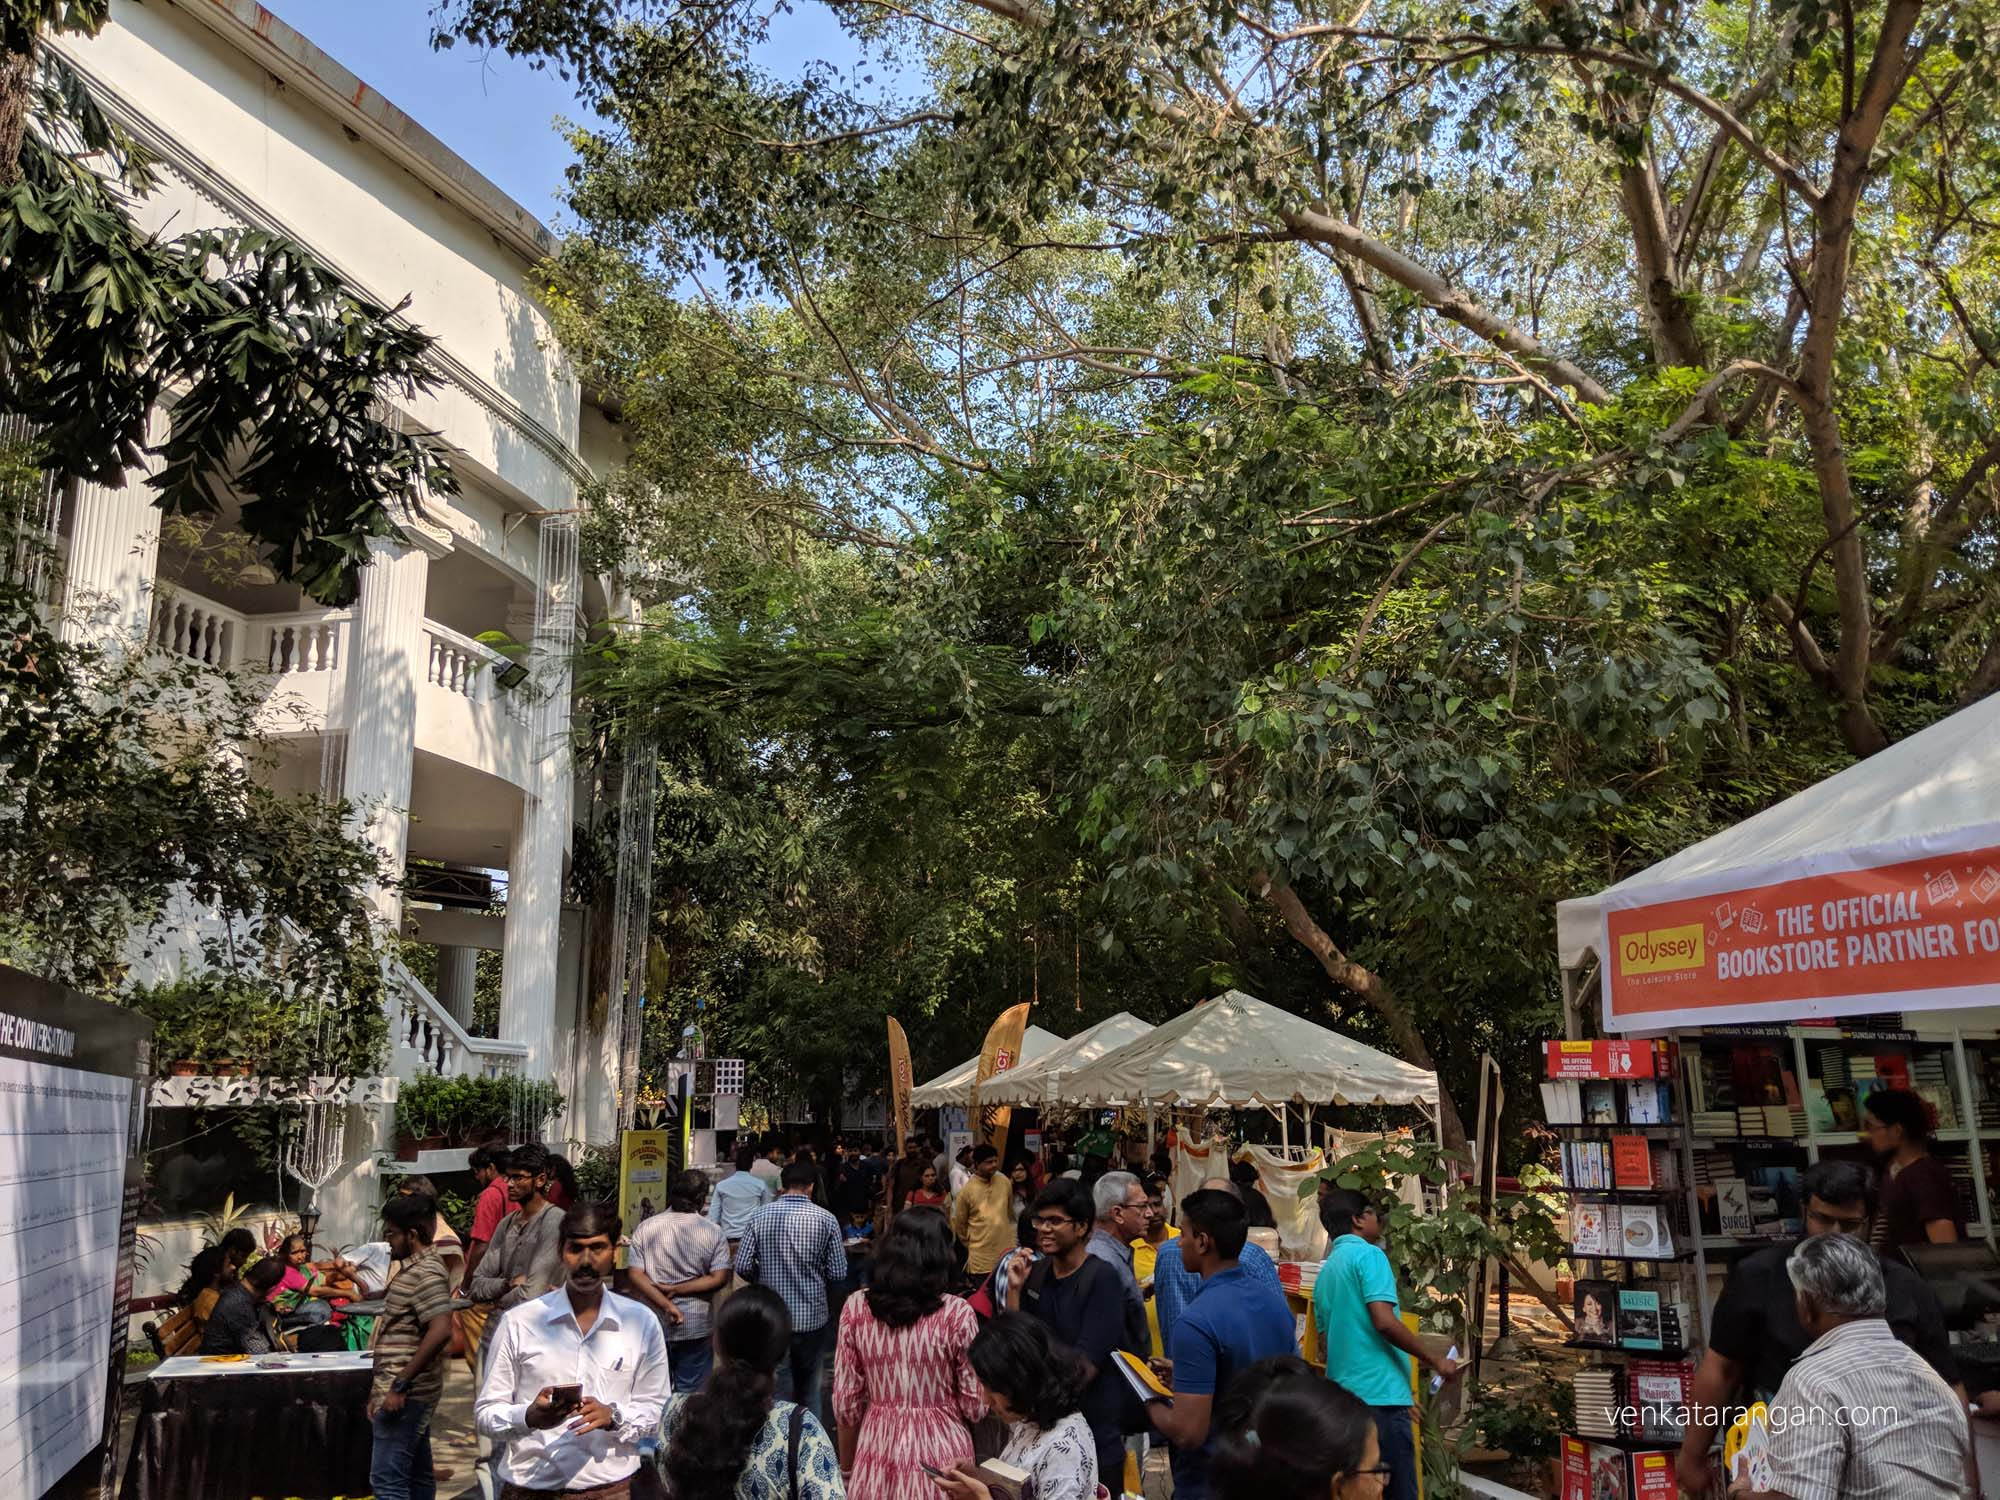 Bazaar outside the hall selling books